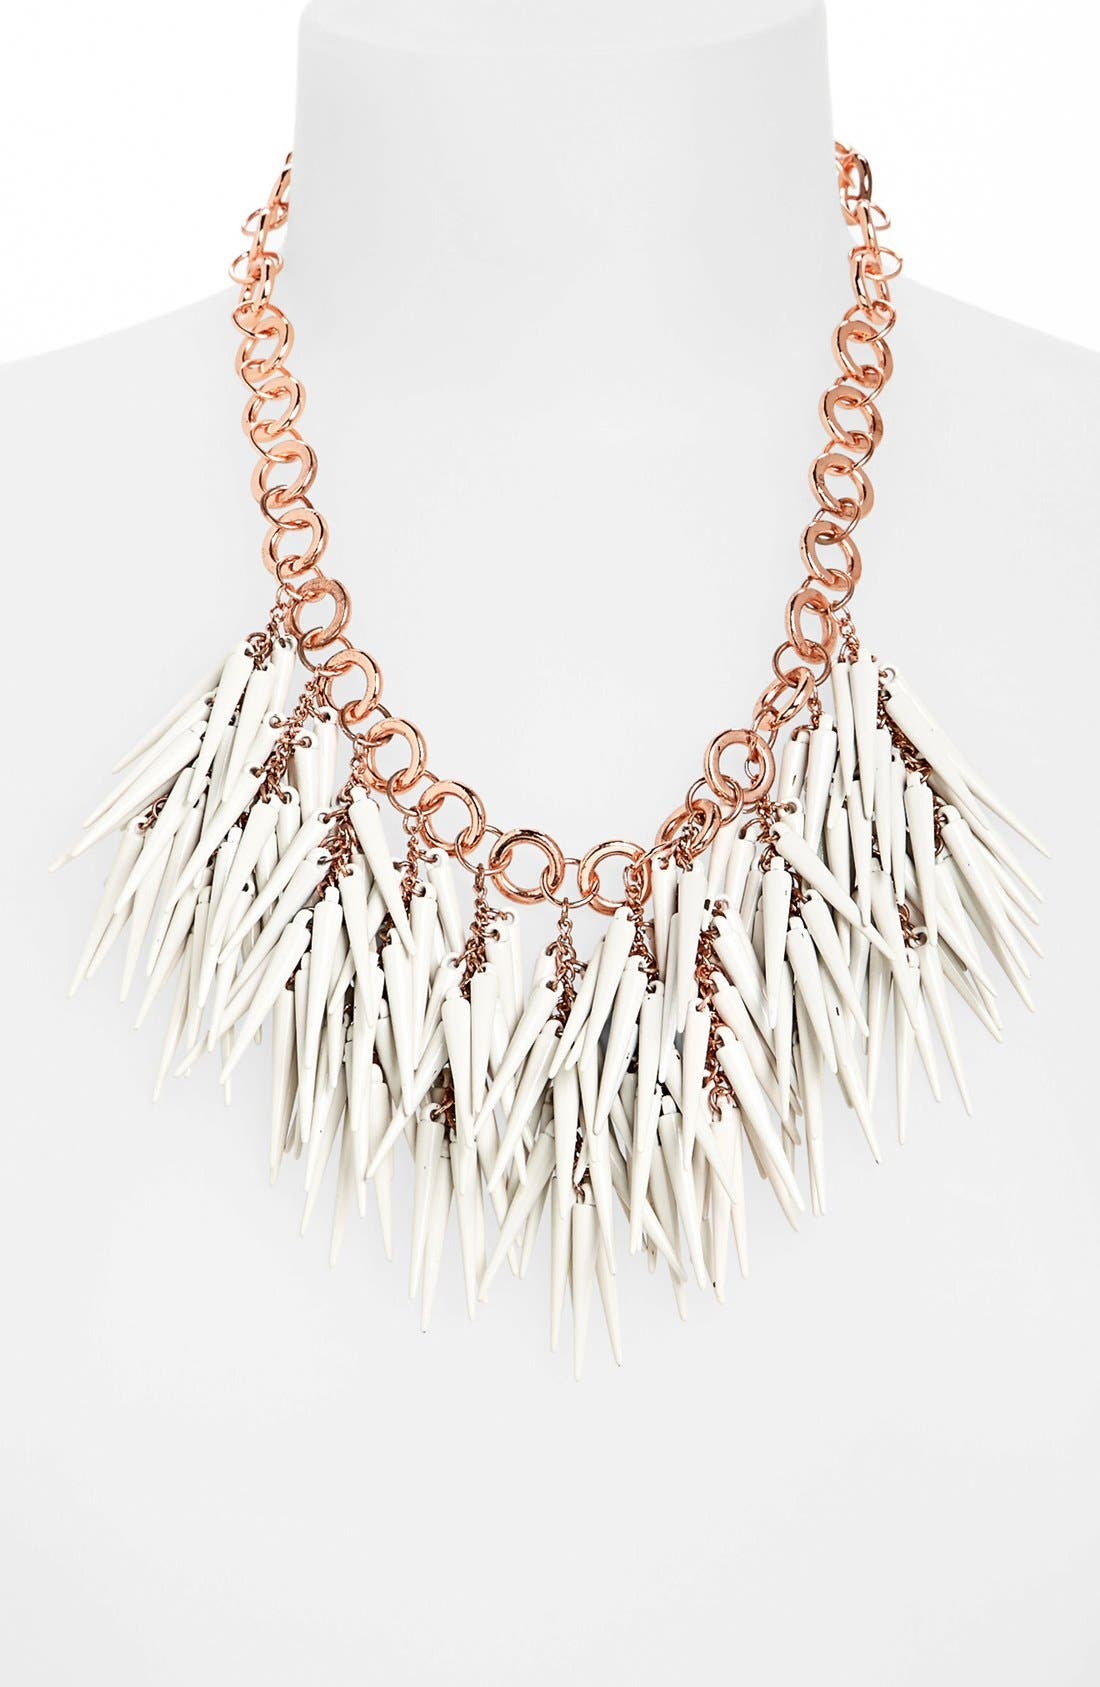 Main Image - 8 Other Reasons 'One Shot Only' Spike Necklace